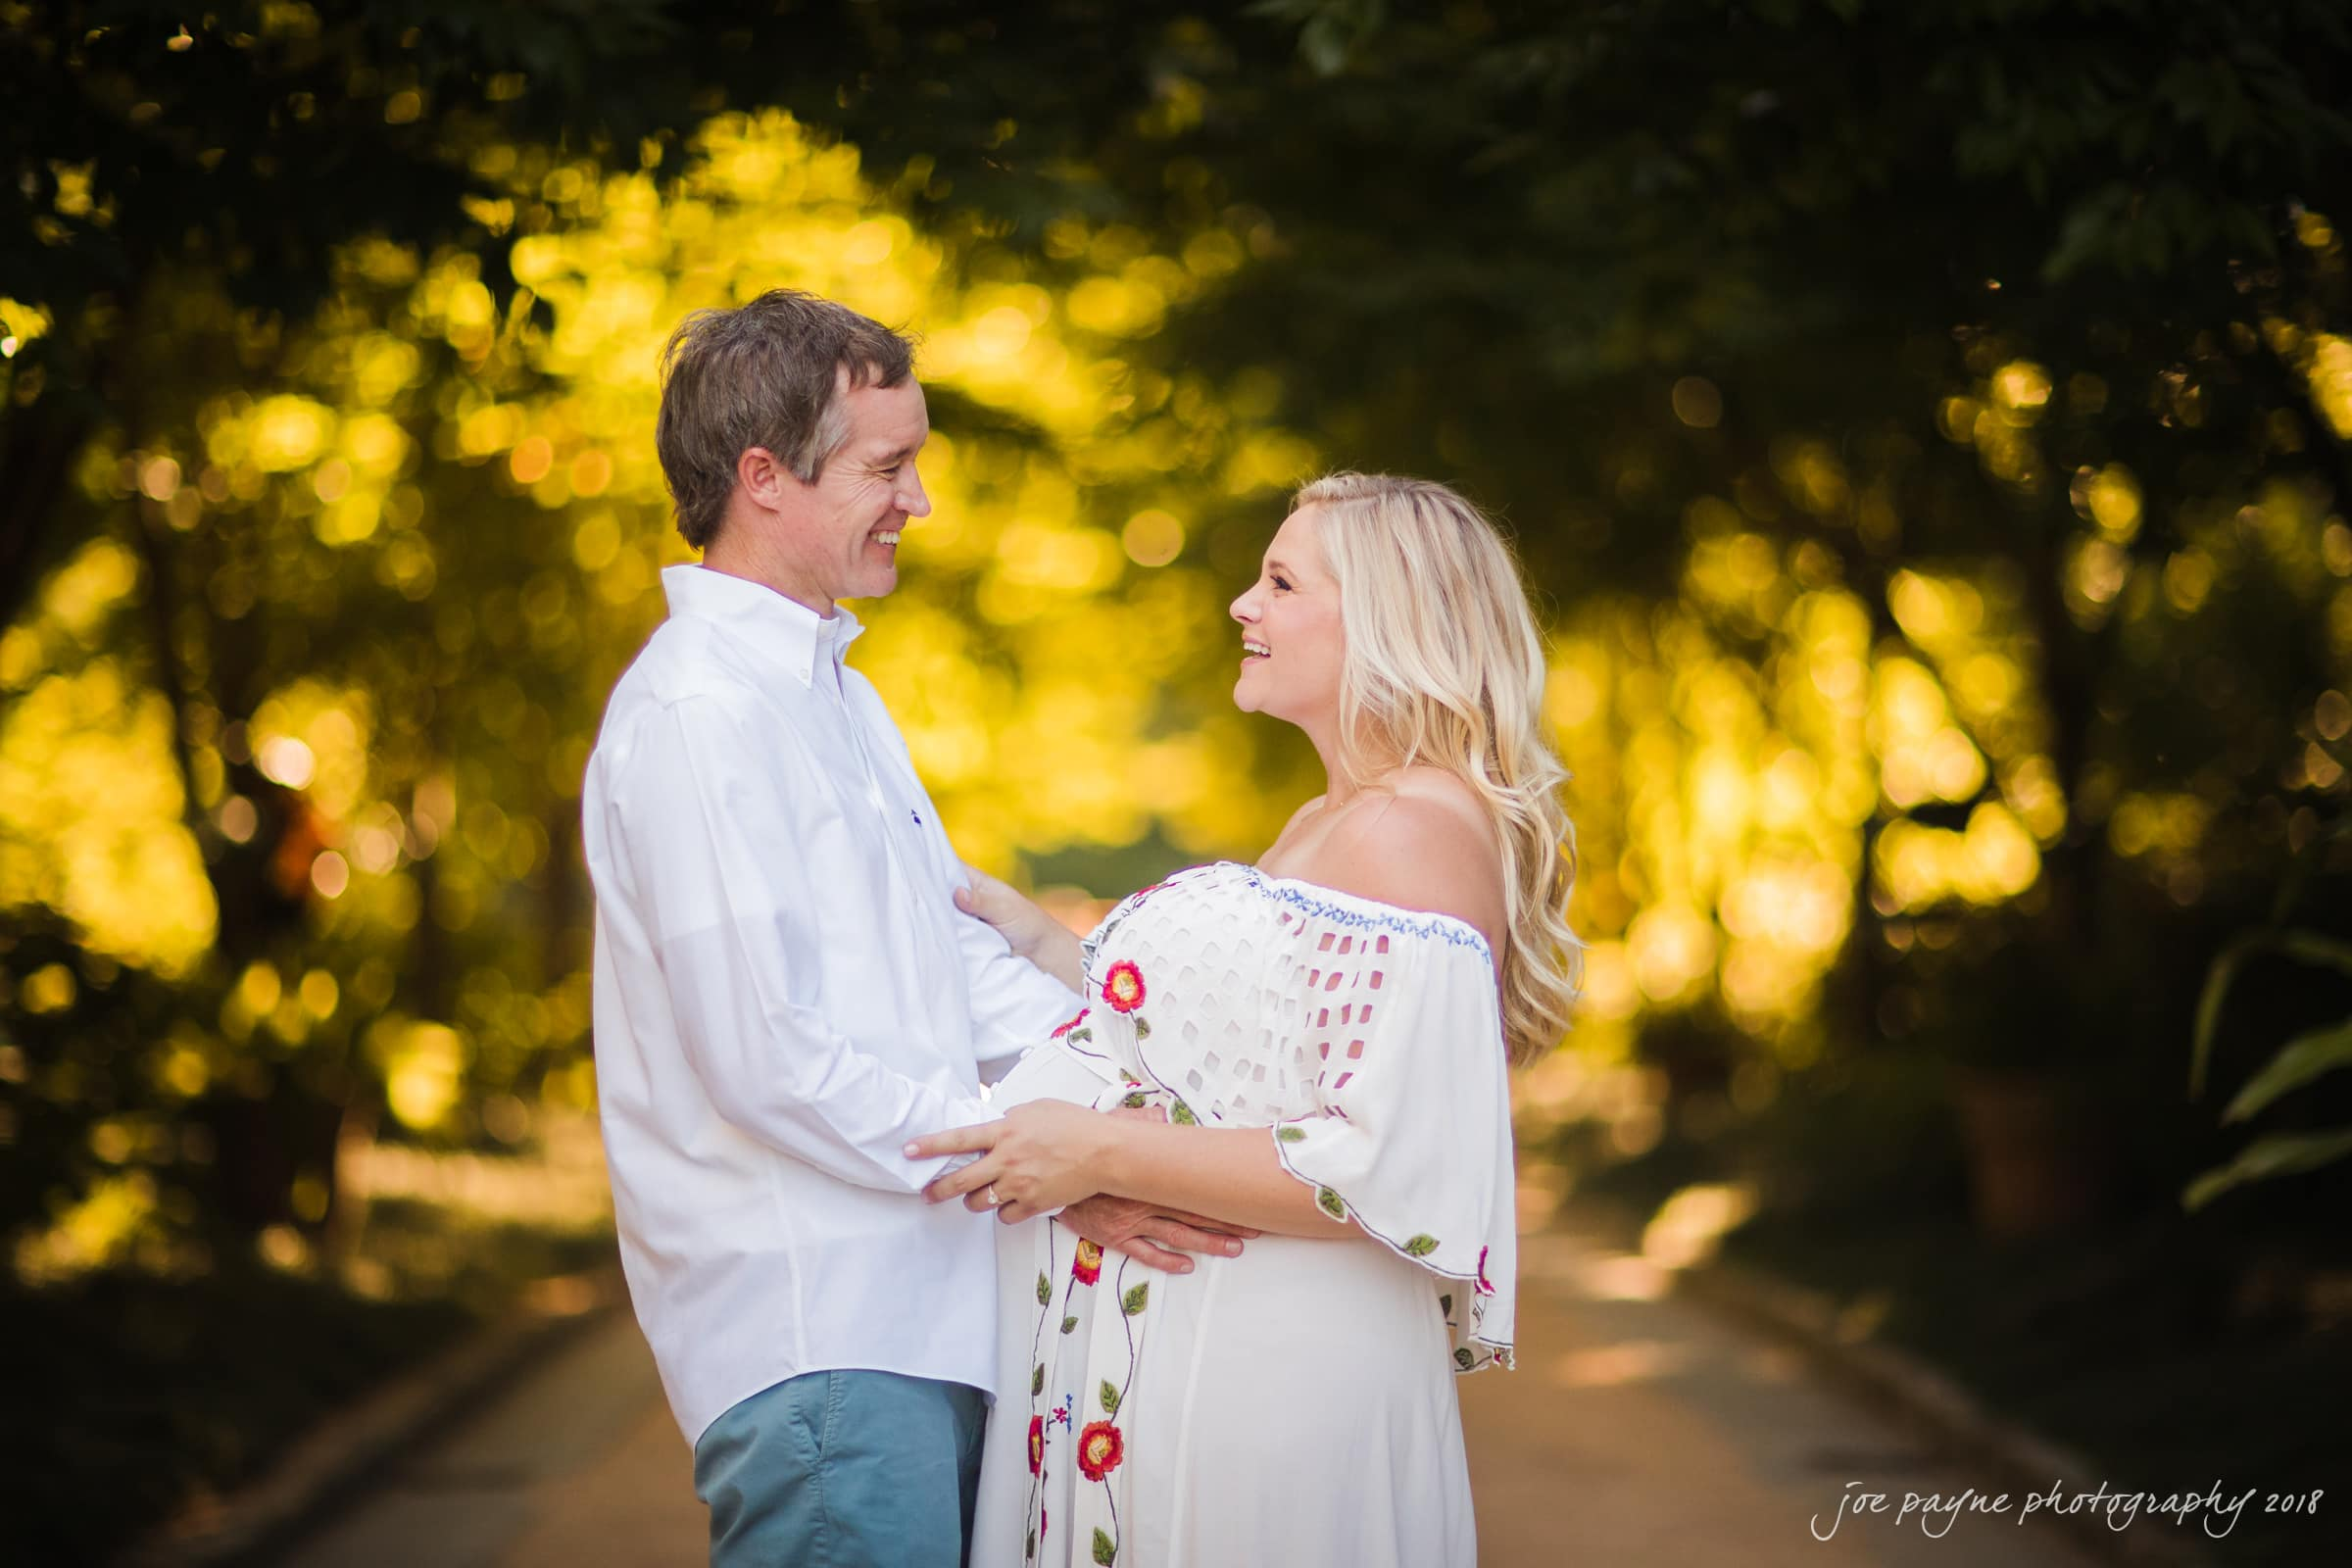 aleigh-Maternity-Photographer-Hallie-Cullen-15 duke gardens maternity session - hallie & cullen